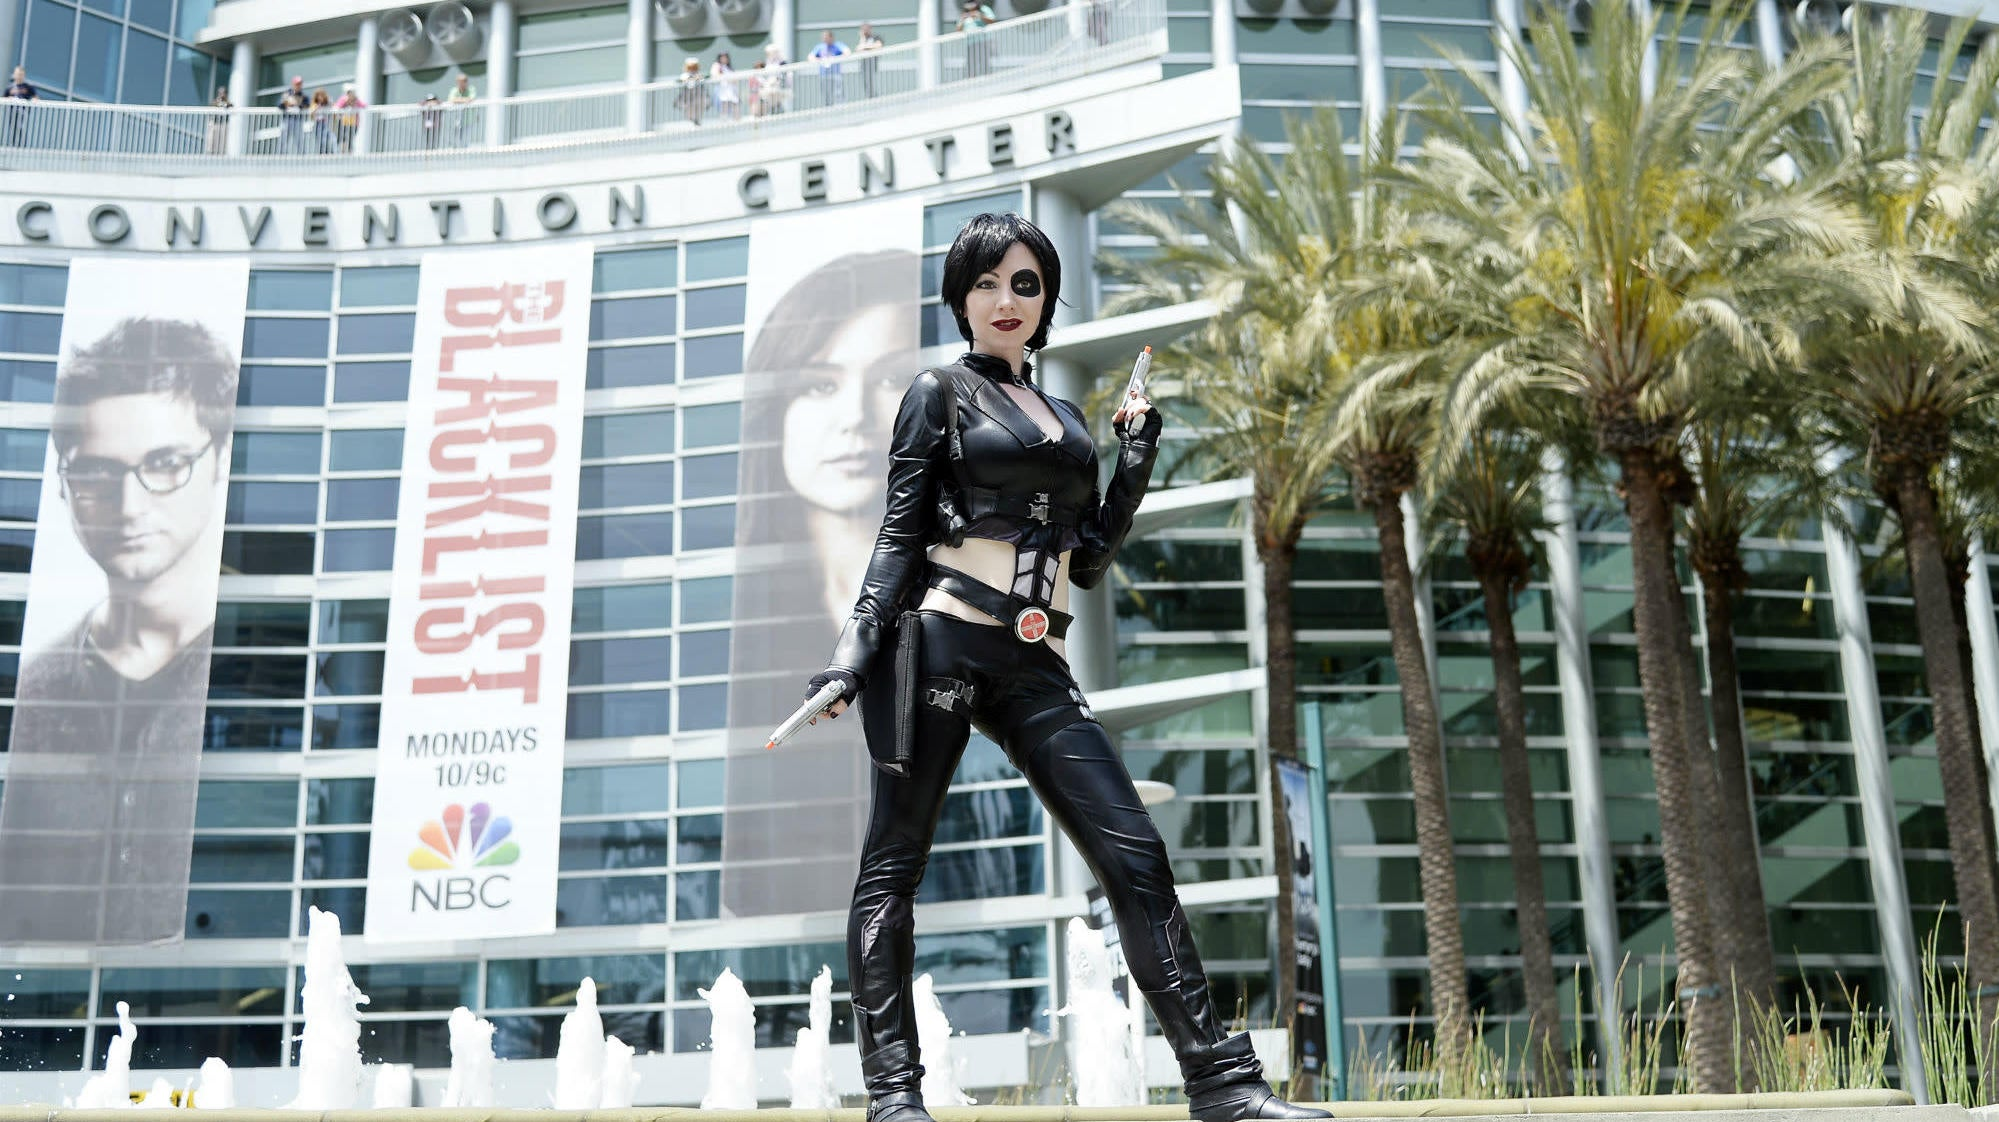 WonderCon 2020 Has Been Postponed But No Decision Has Been Made On Comic-Con